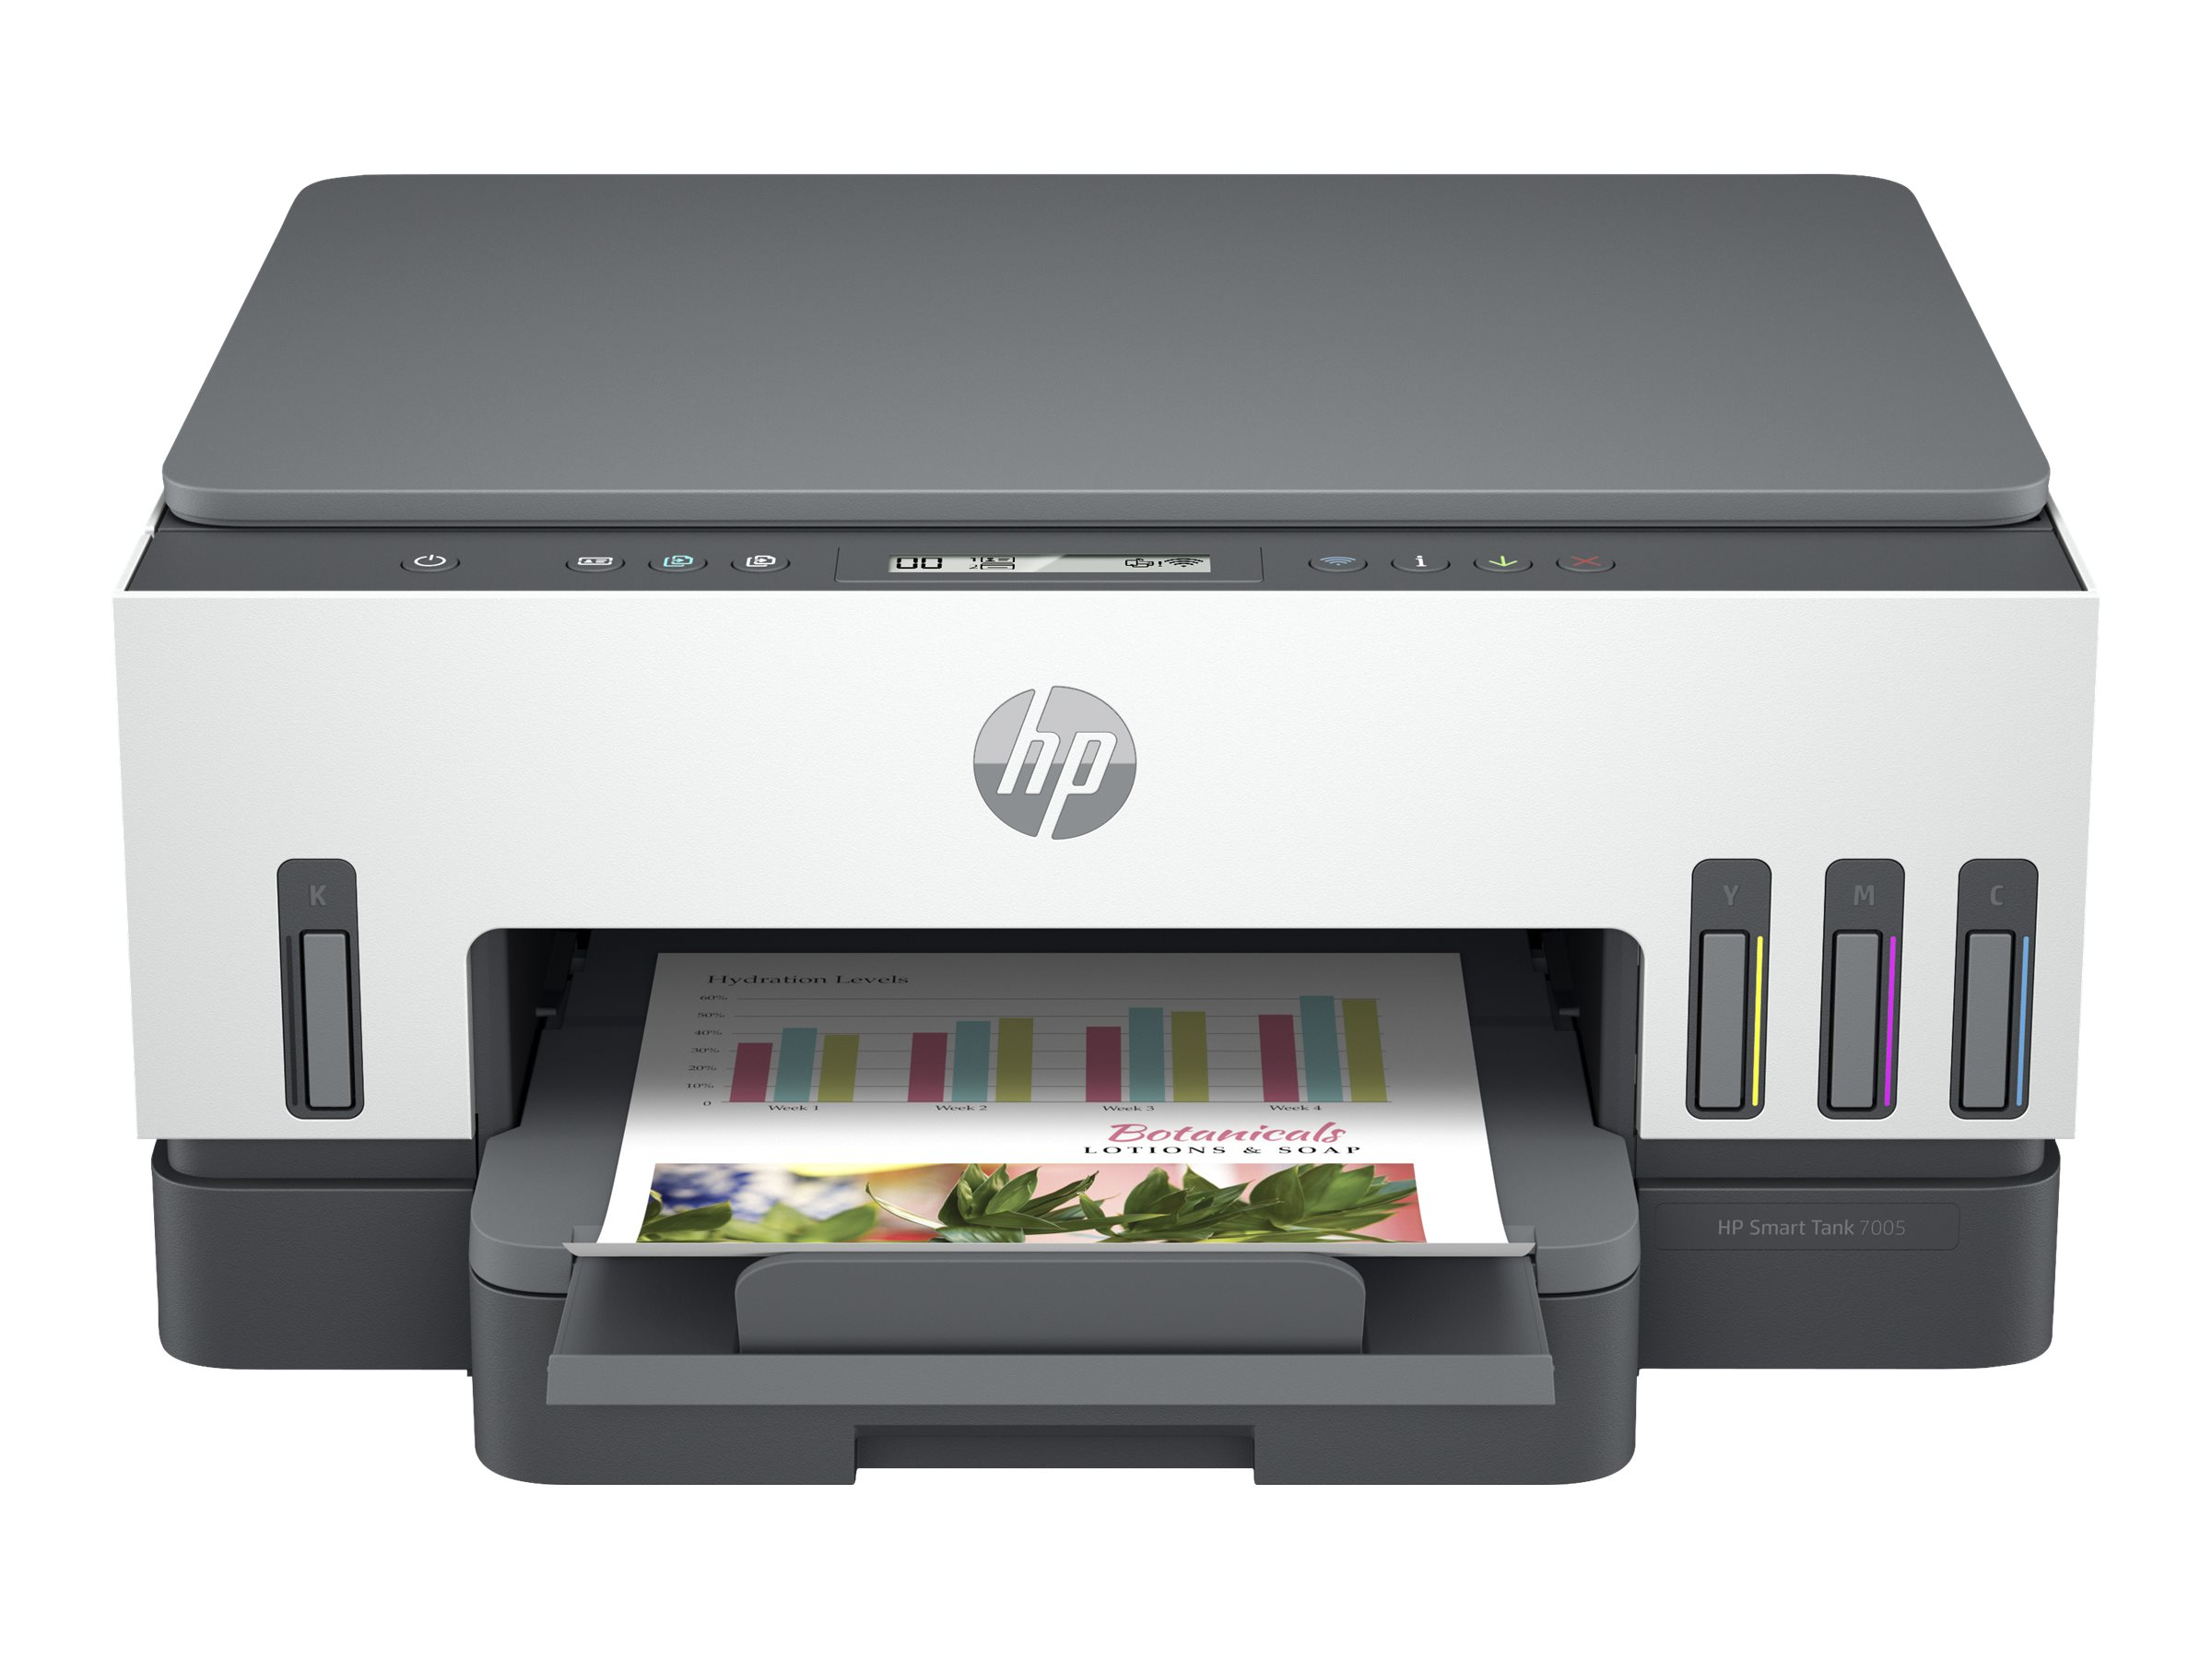 HP Smart Tank 7005 All-in-One - Multifunktionsdrucker - Farbe - Tintenstrahl - refillable - Letter A (216 x 279 mm)/A4 (210 x 29